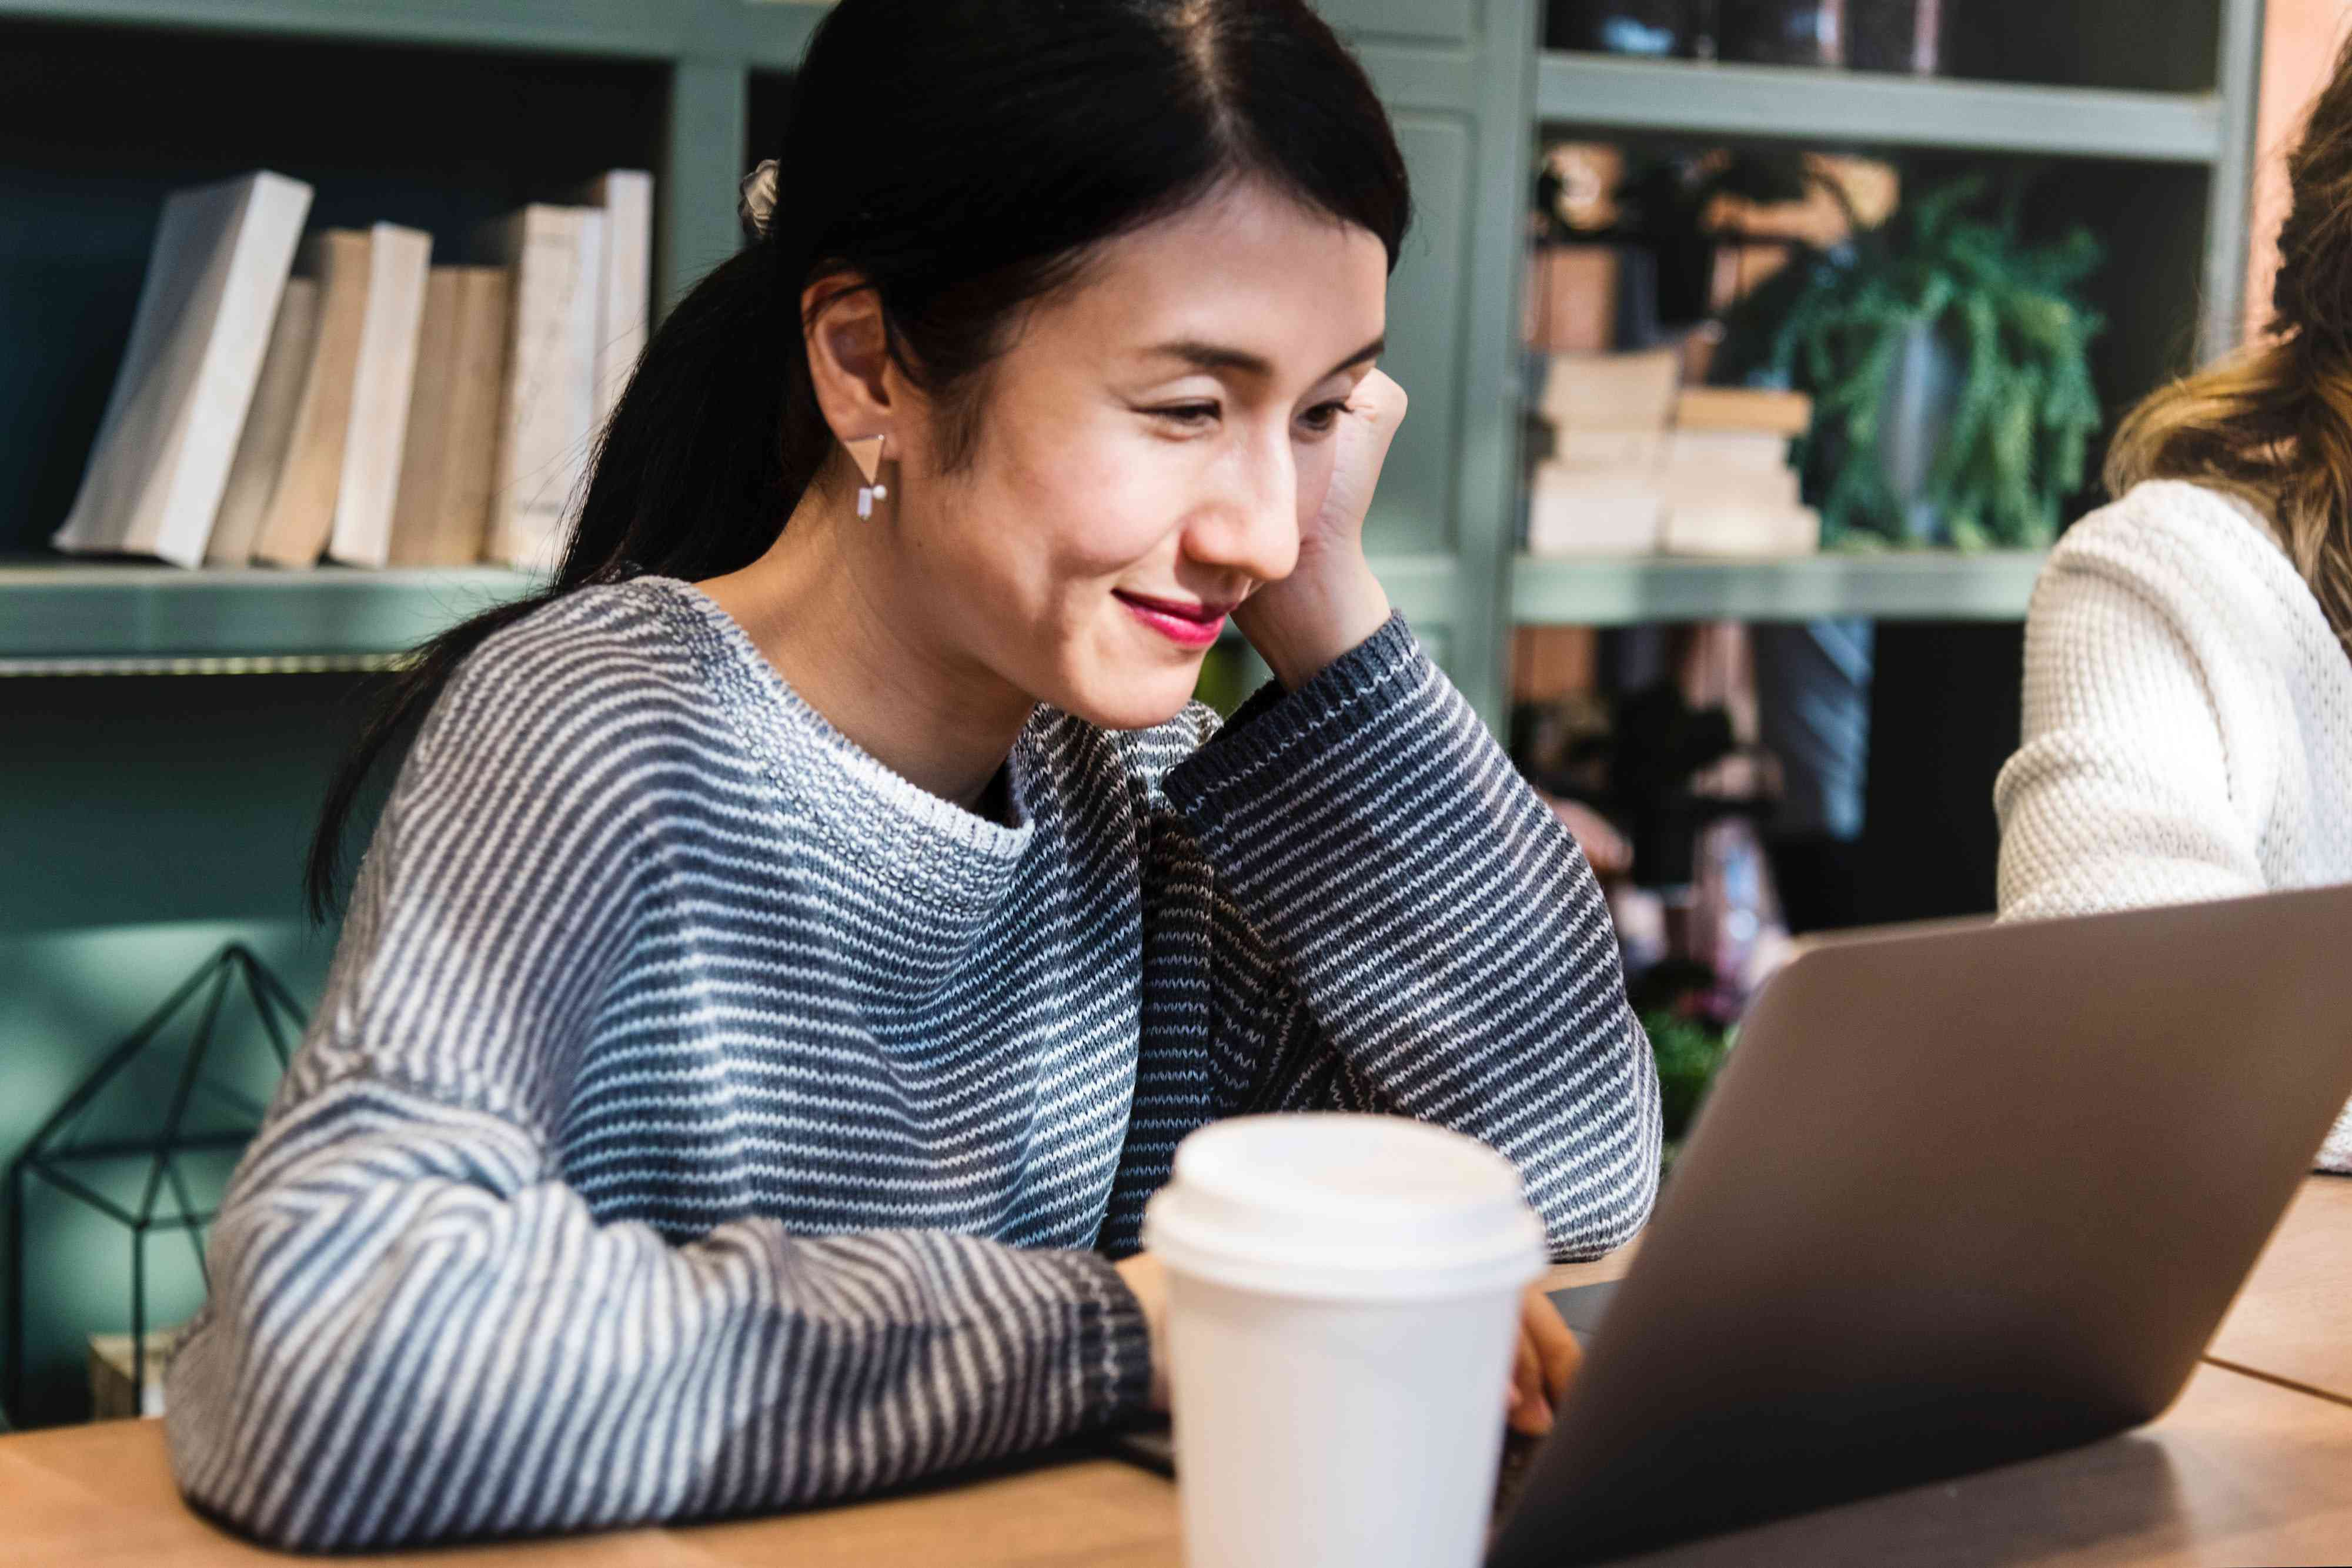 Smiling, relaxed woman using laptop